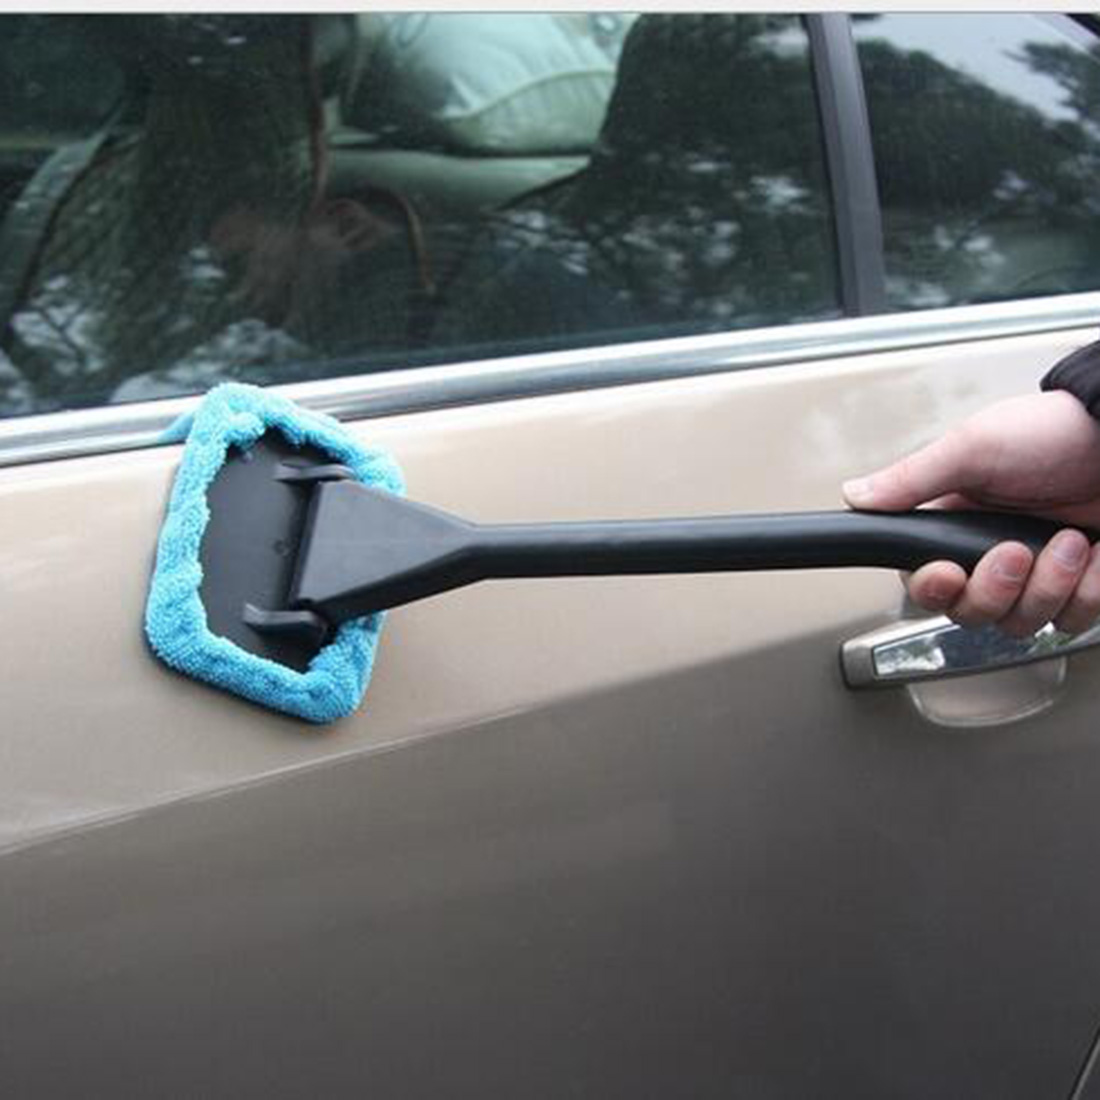 Home Practical 1pcs Portable Windshield Easy Cleaner - Clean Hard-To-Reach Windows On Your Car Or Home Cleaning Tools(China (Mainland))